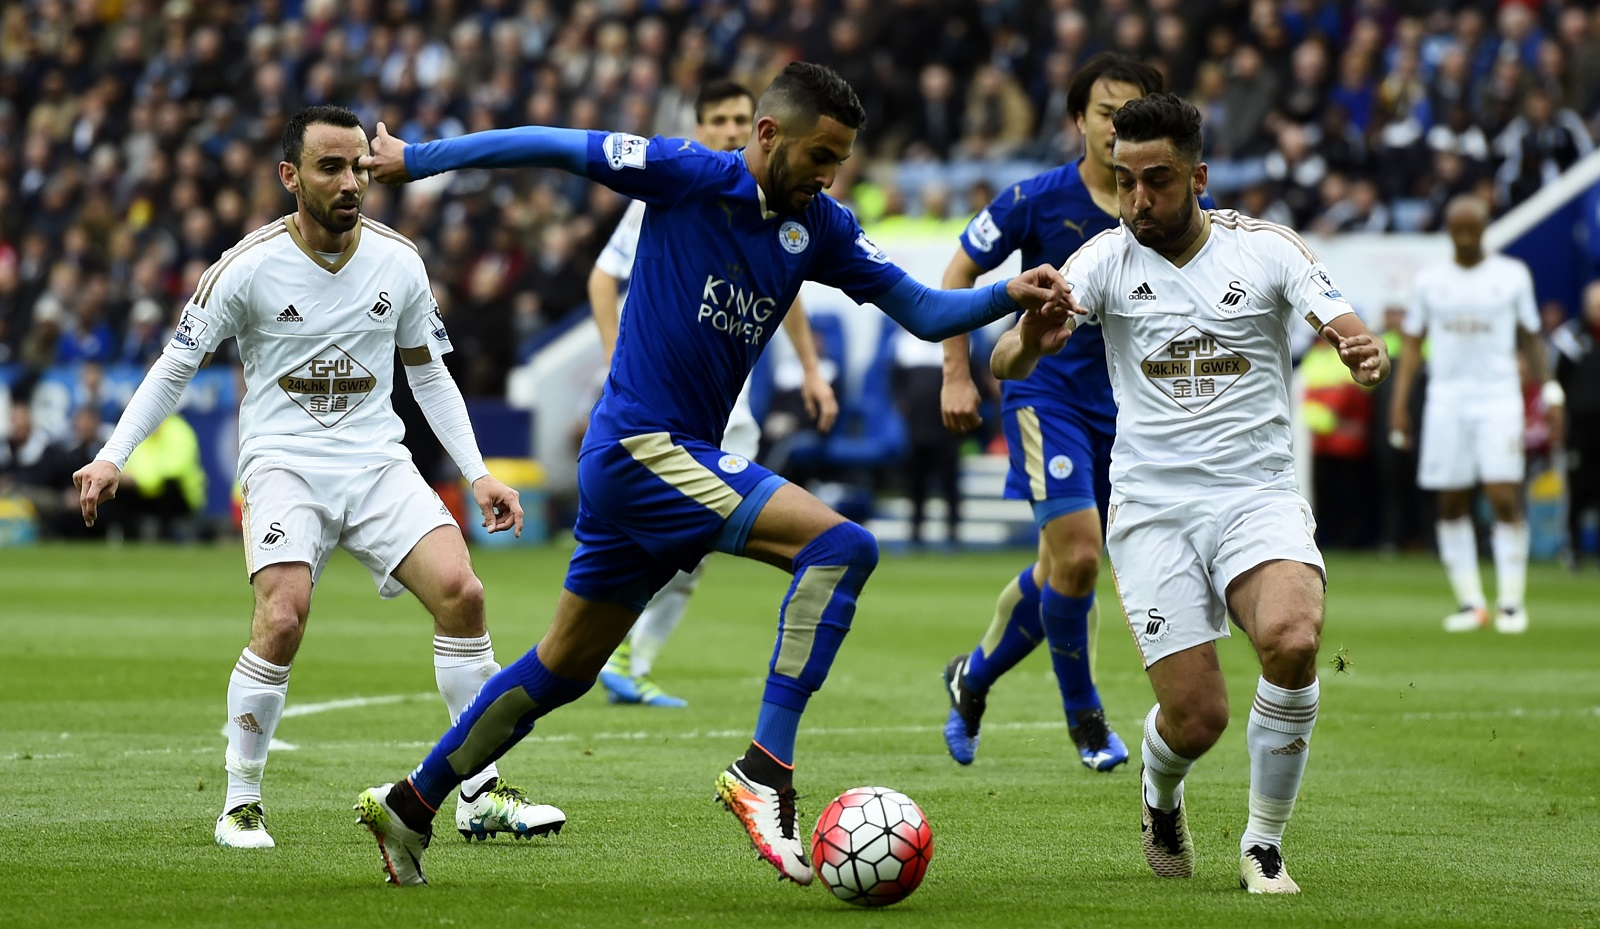 Riyad Mahrez, foreground in blue, won Pro Footballers' Association's Player of the Year for the English Premier League. (Getty Images)